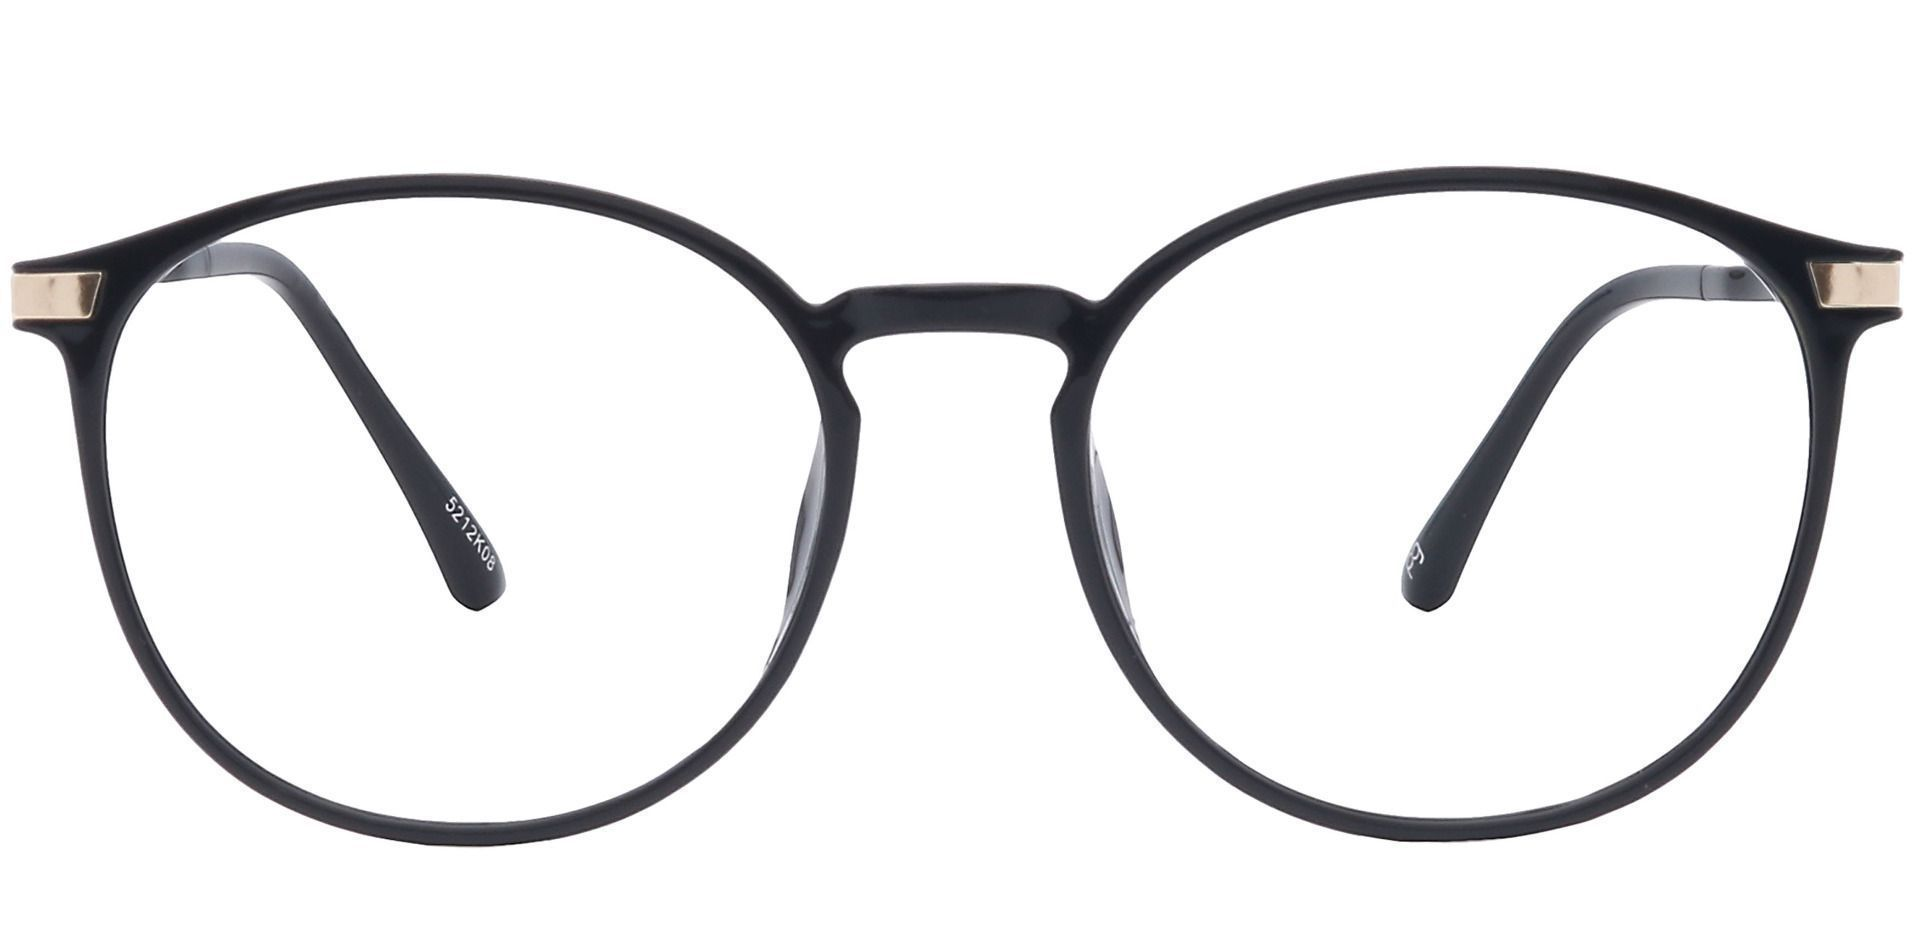 Brighton Oval Prescription Glasses - Black